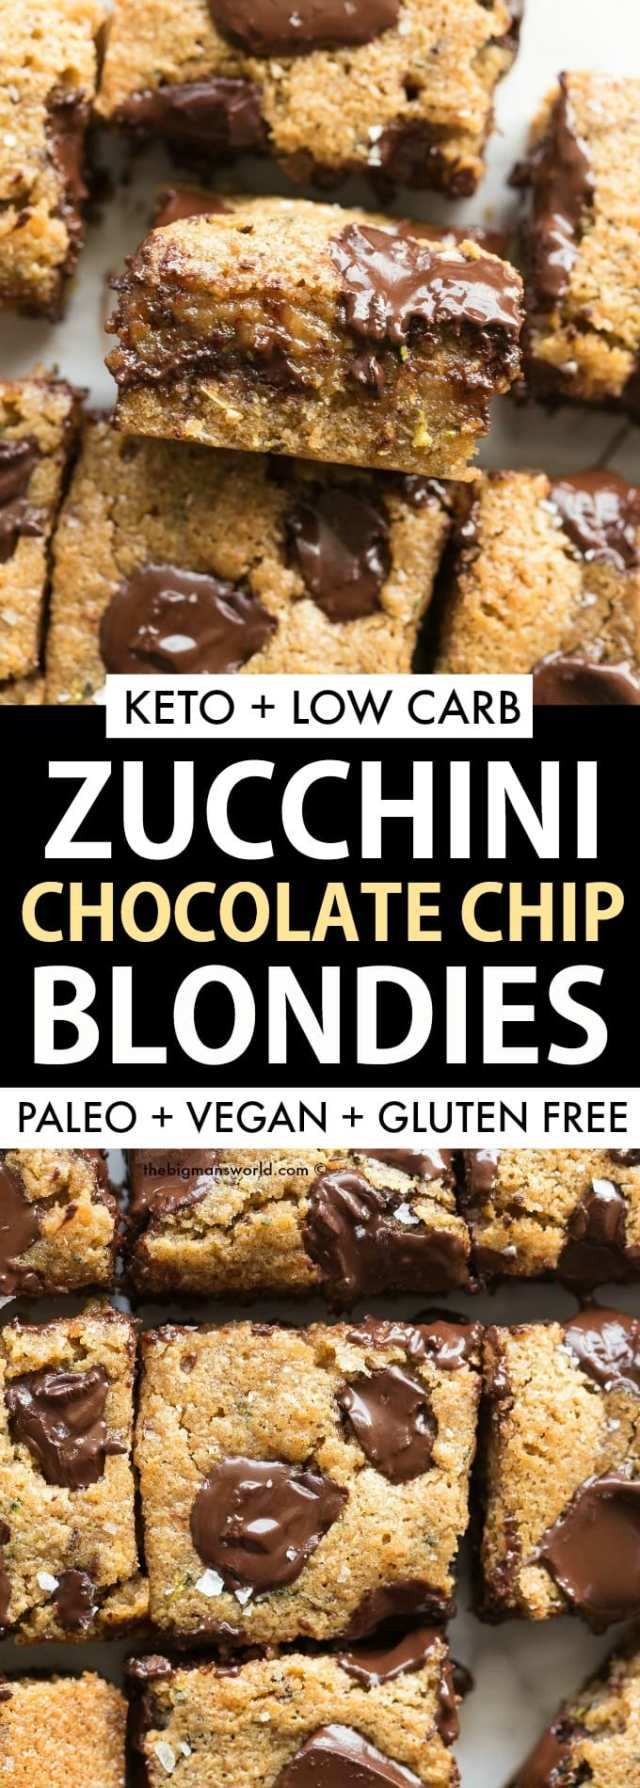 Healthy Zucchini Almond Butter Blondies recipe made keto, vegan and paleo.